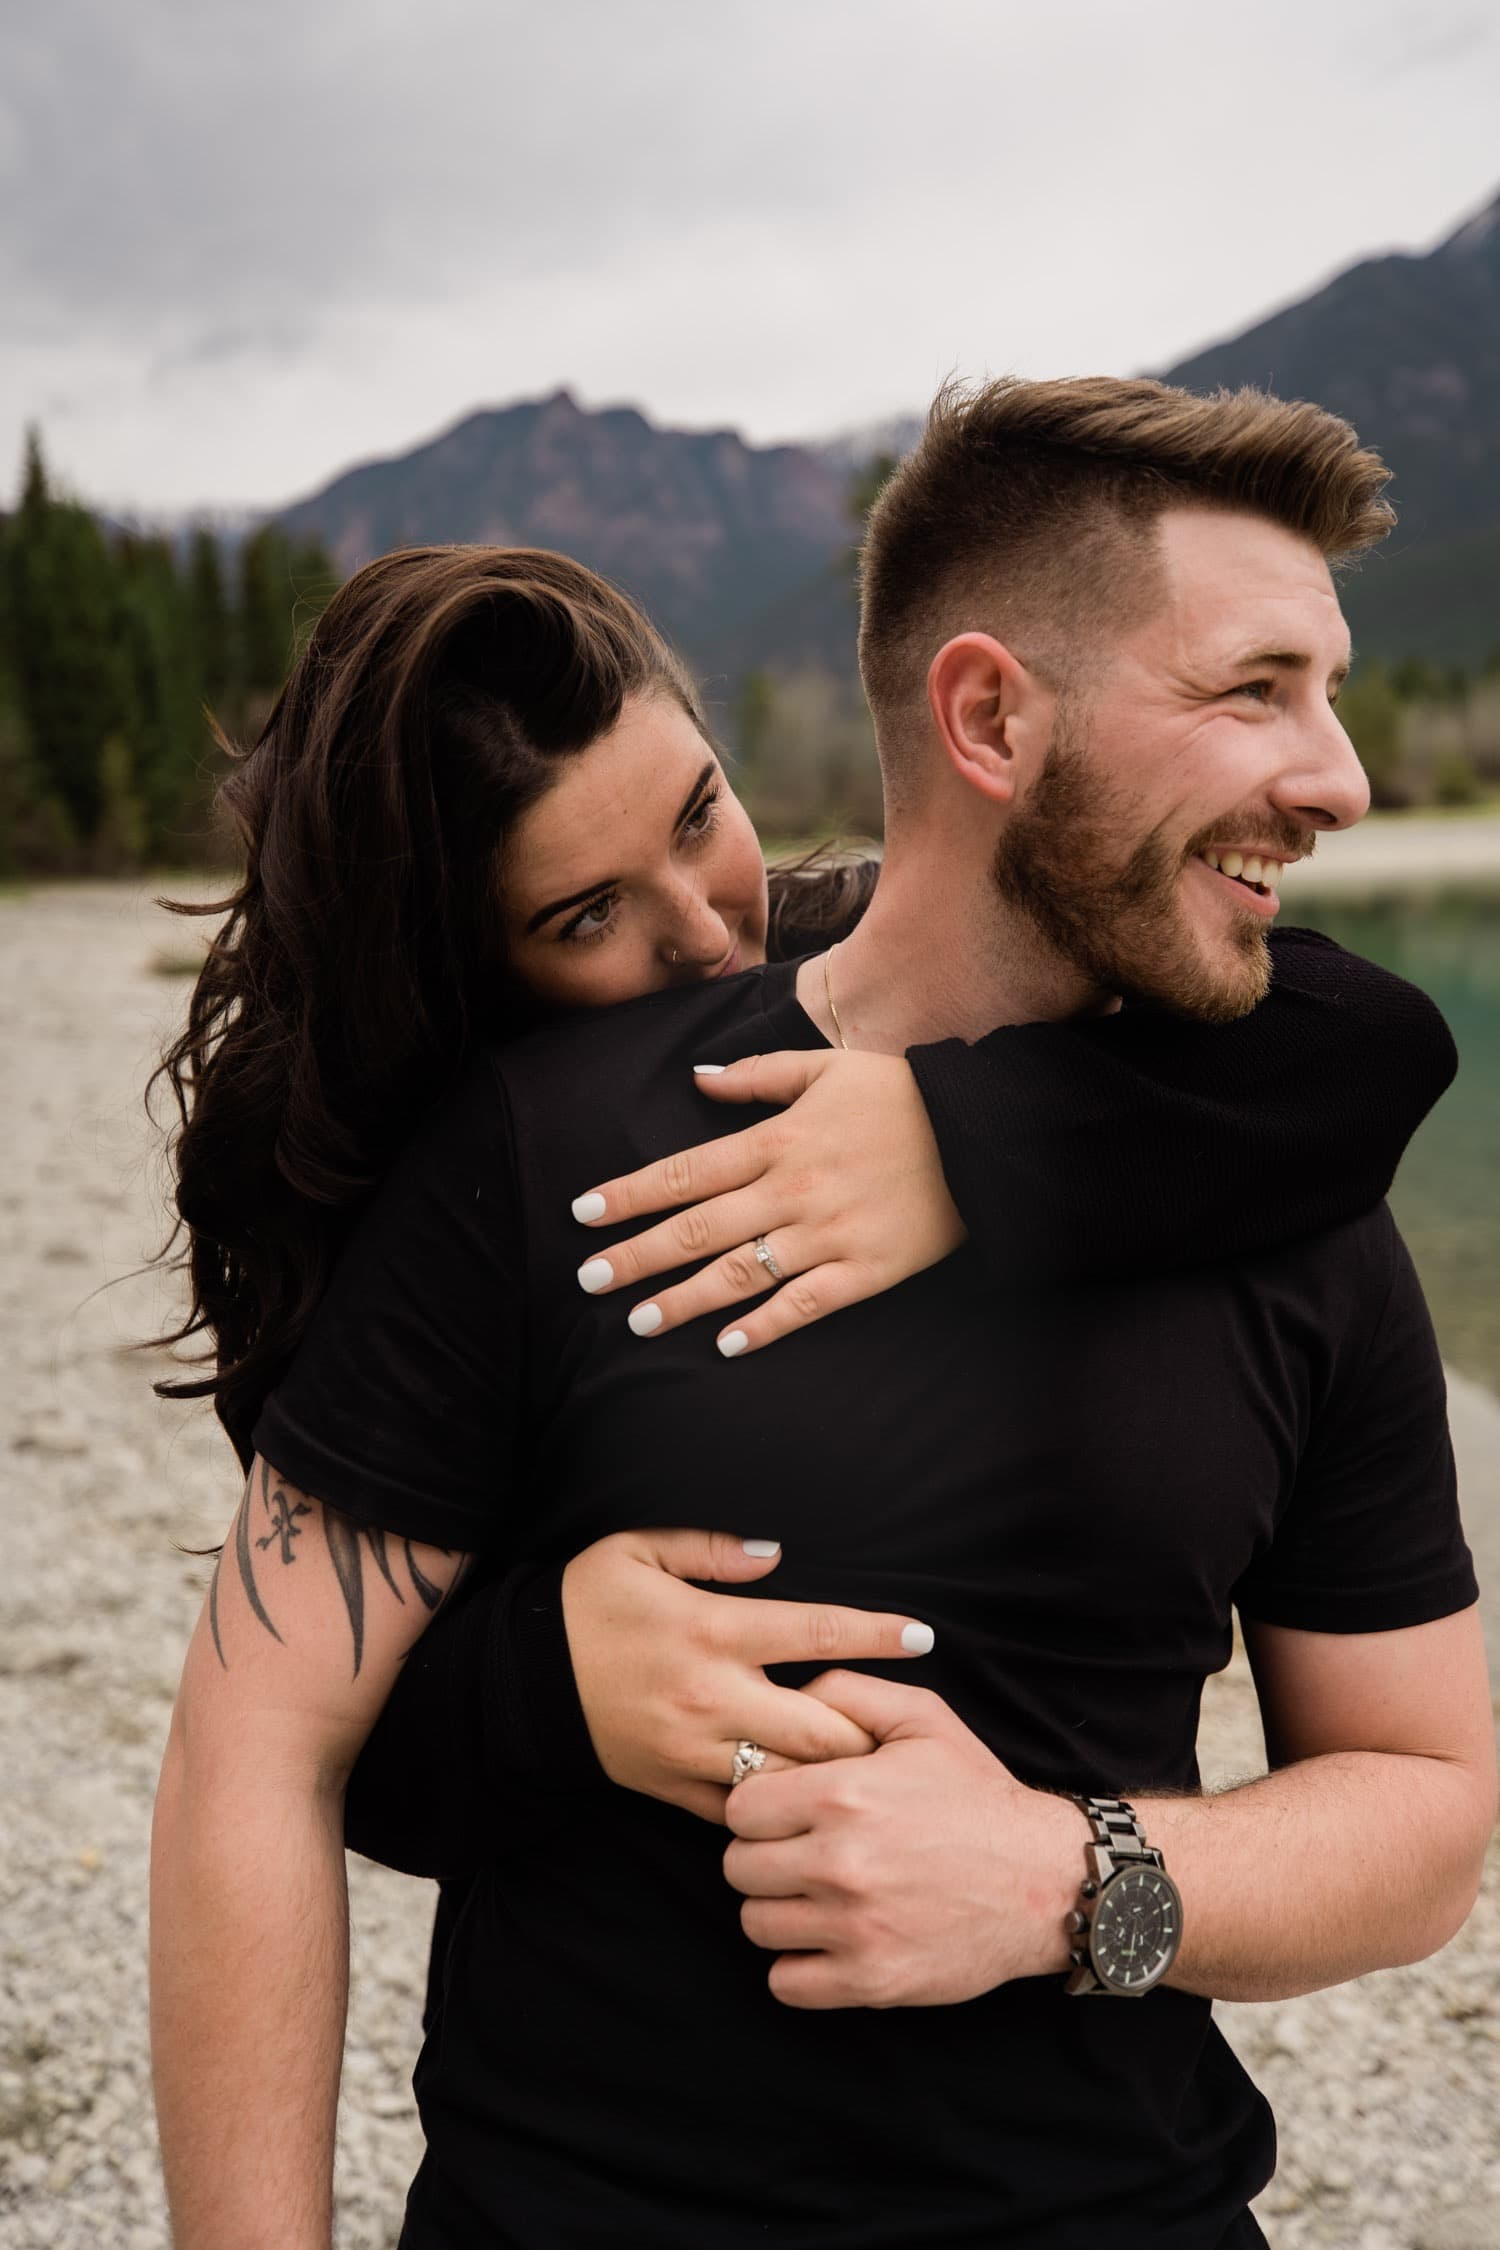 A woman wraps her arms around her partner from behind him. She nuzzles  into his neck as they enjoy the beautiful mountains around them during their adventurous mountain engagement session in Kimberley, BC with photographer Tara Hill Studios